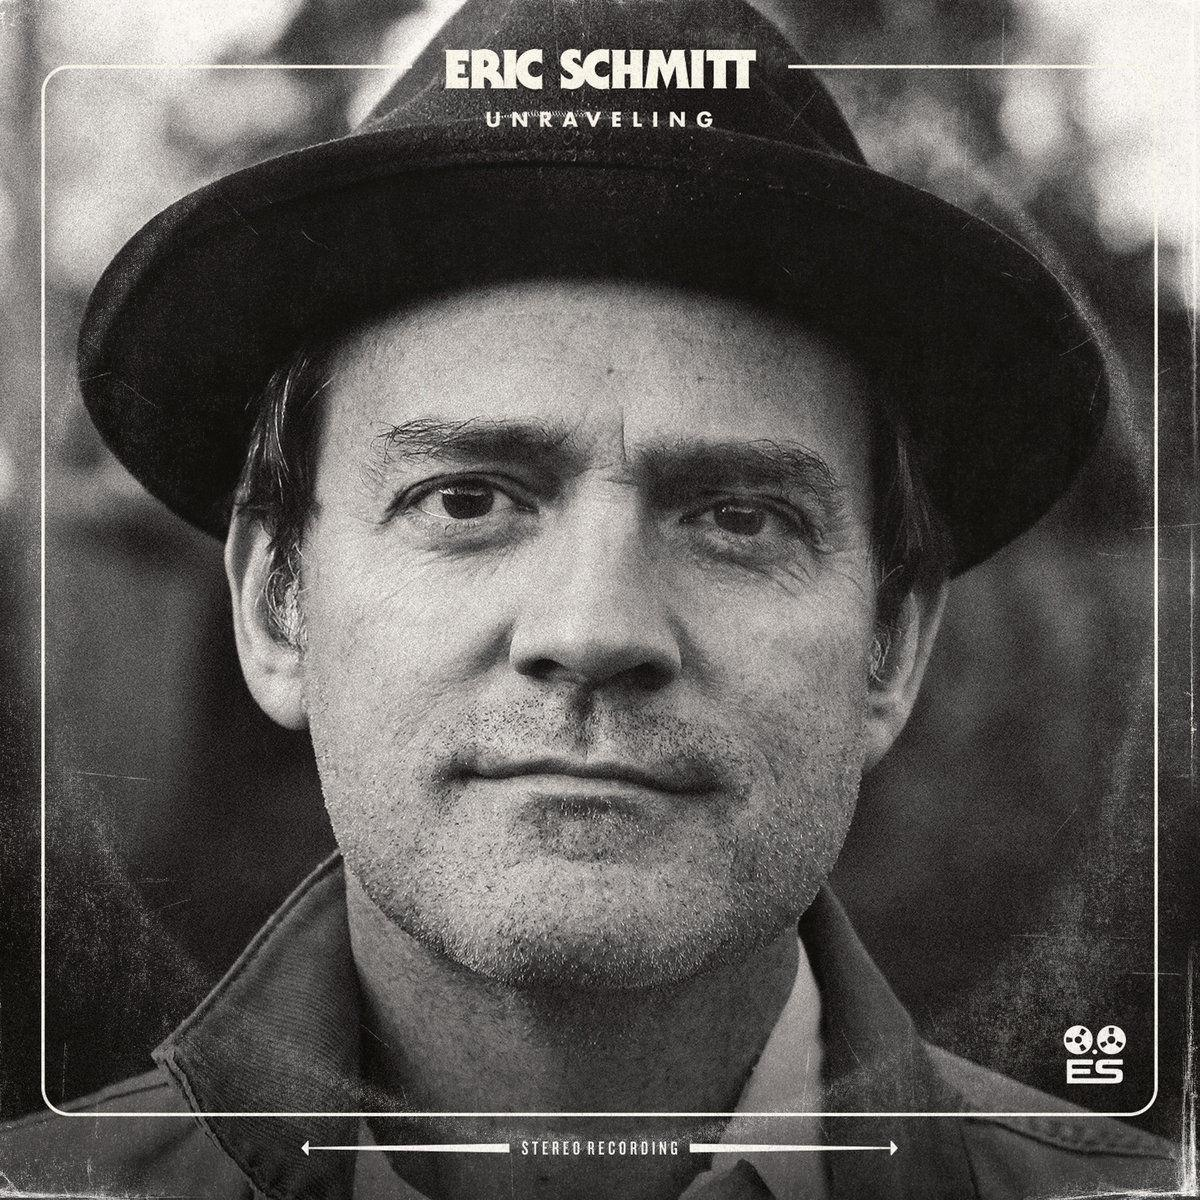 Eric Schmitt 'Unraveling' album cover for Red